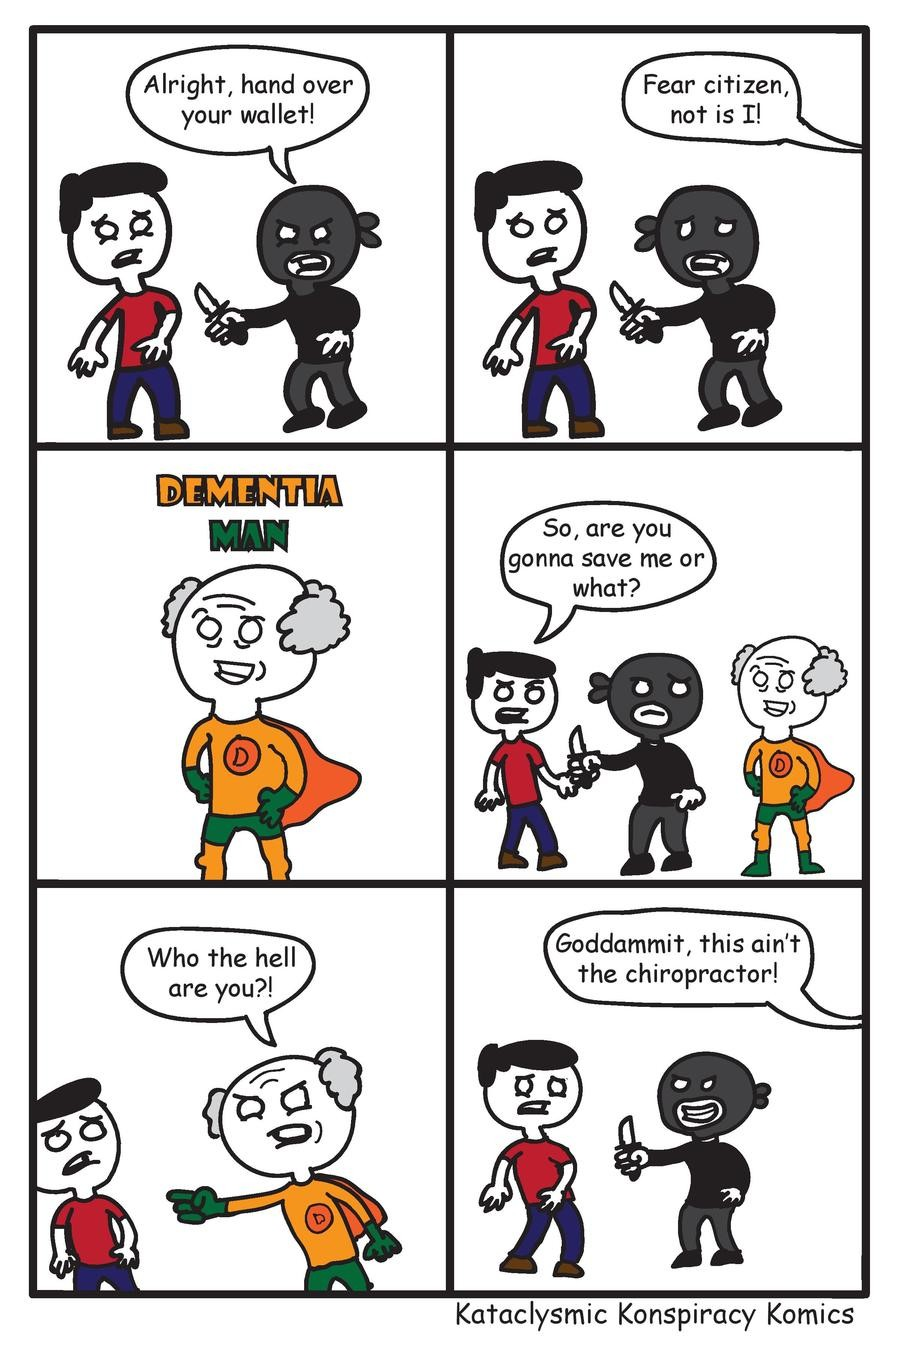 Here to save the what now?. Kataclysmic Konspiracy Komics. New comics every Wednesday. Facebook: Twitter: Tapastic: . Alright, hand over your wallet! Fear citiz